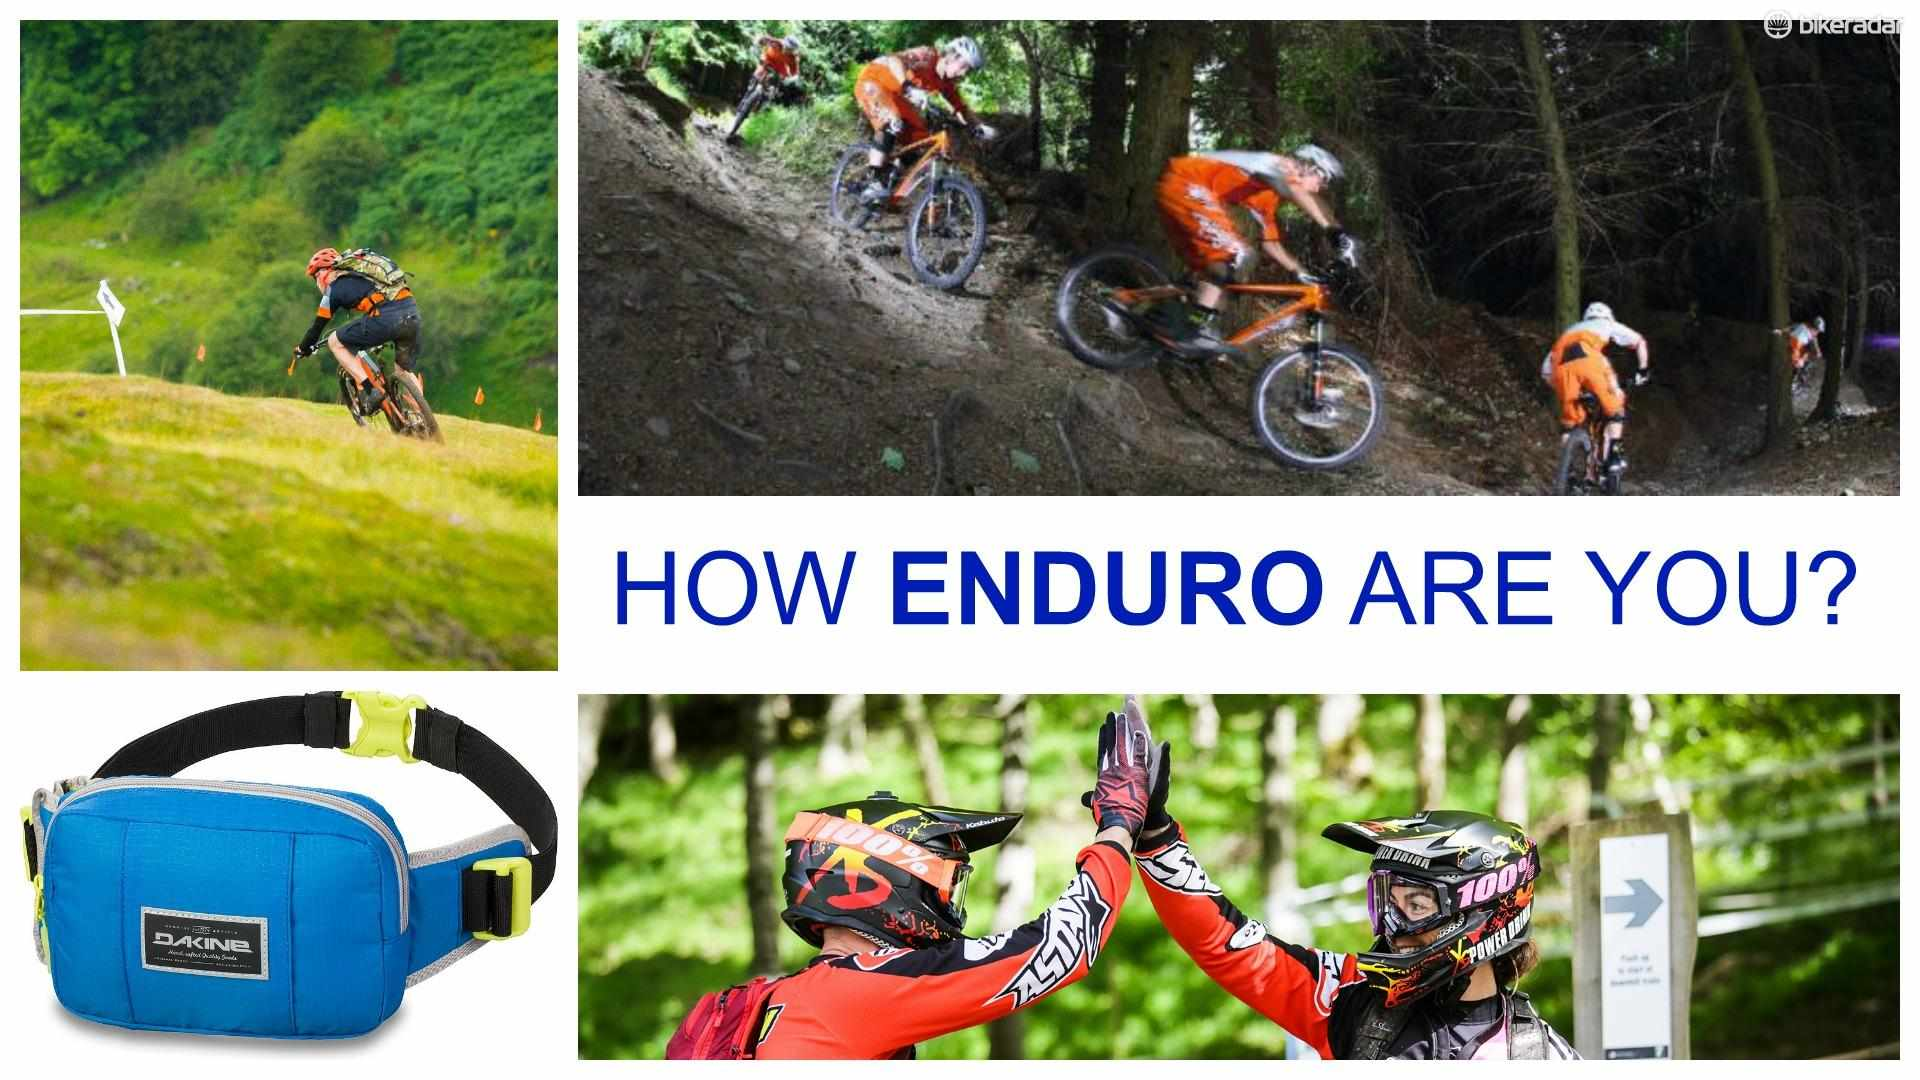 Quiz: How enduro are you?